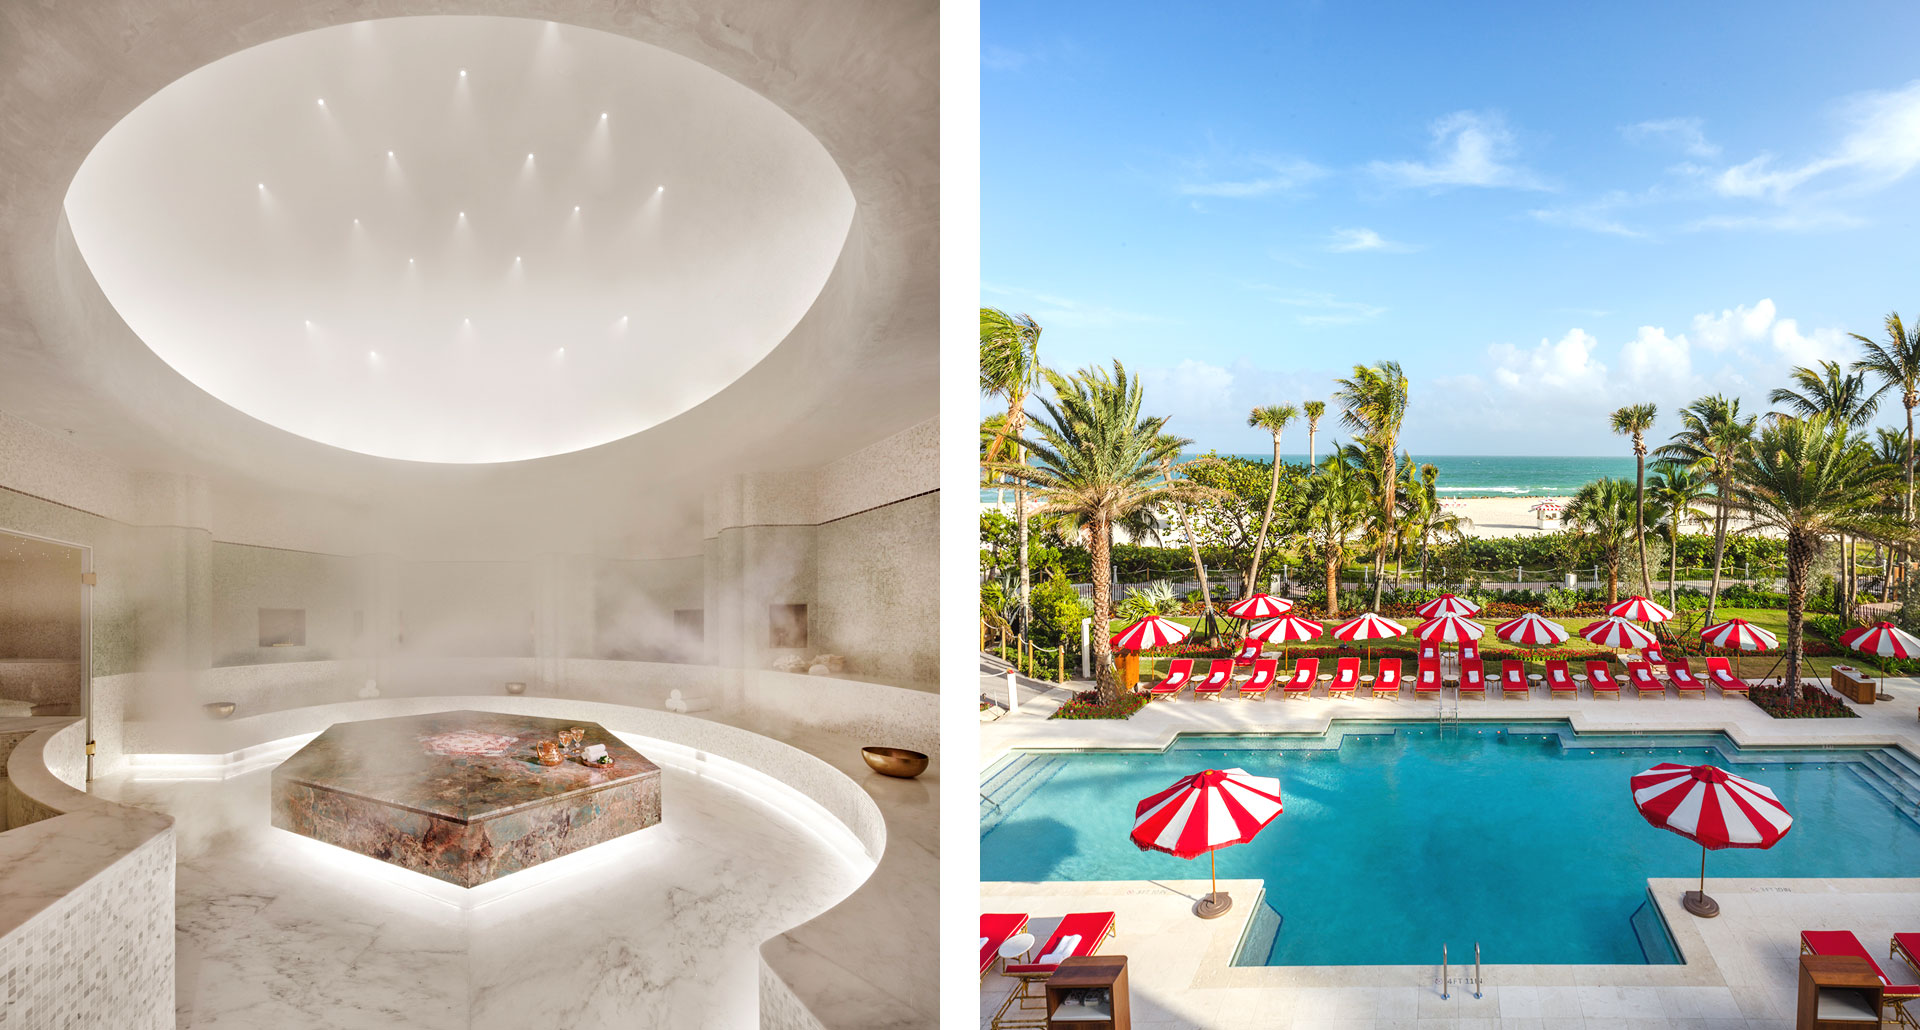 Faena Hotel Miami Beach - boutique hotel in Miami